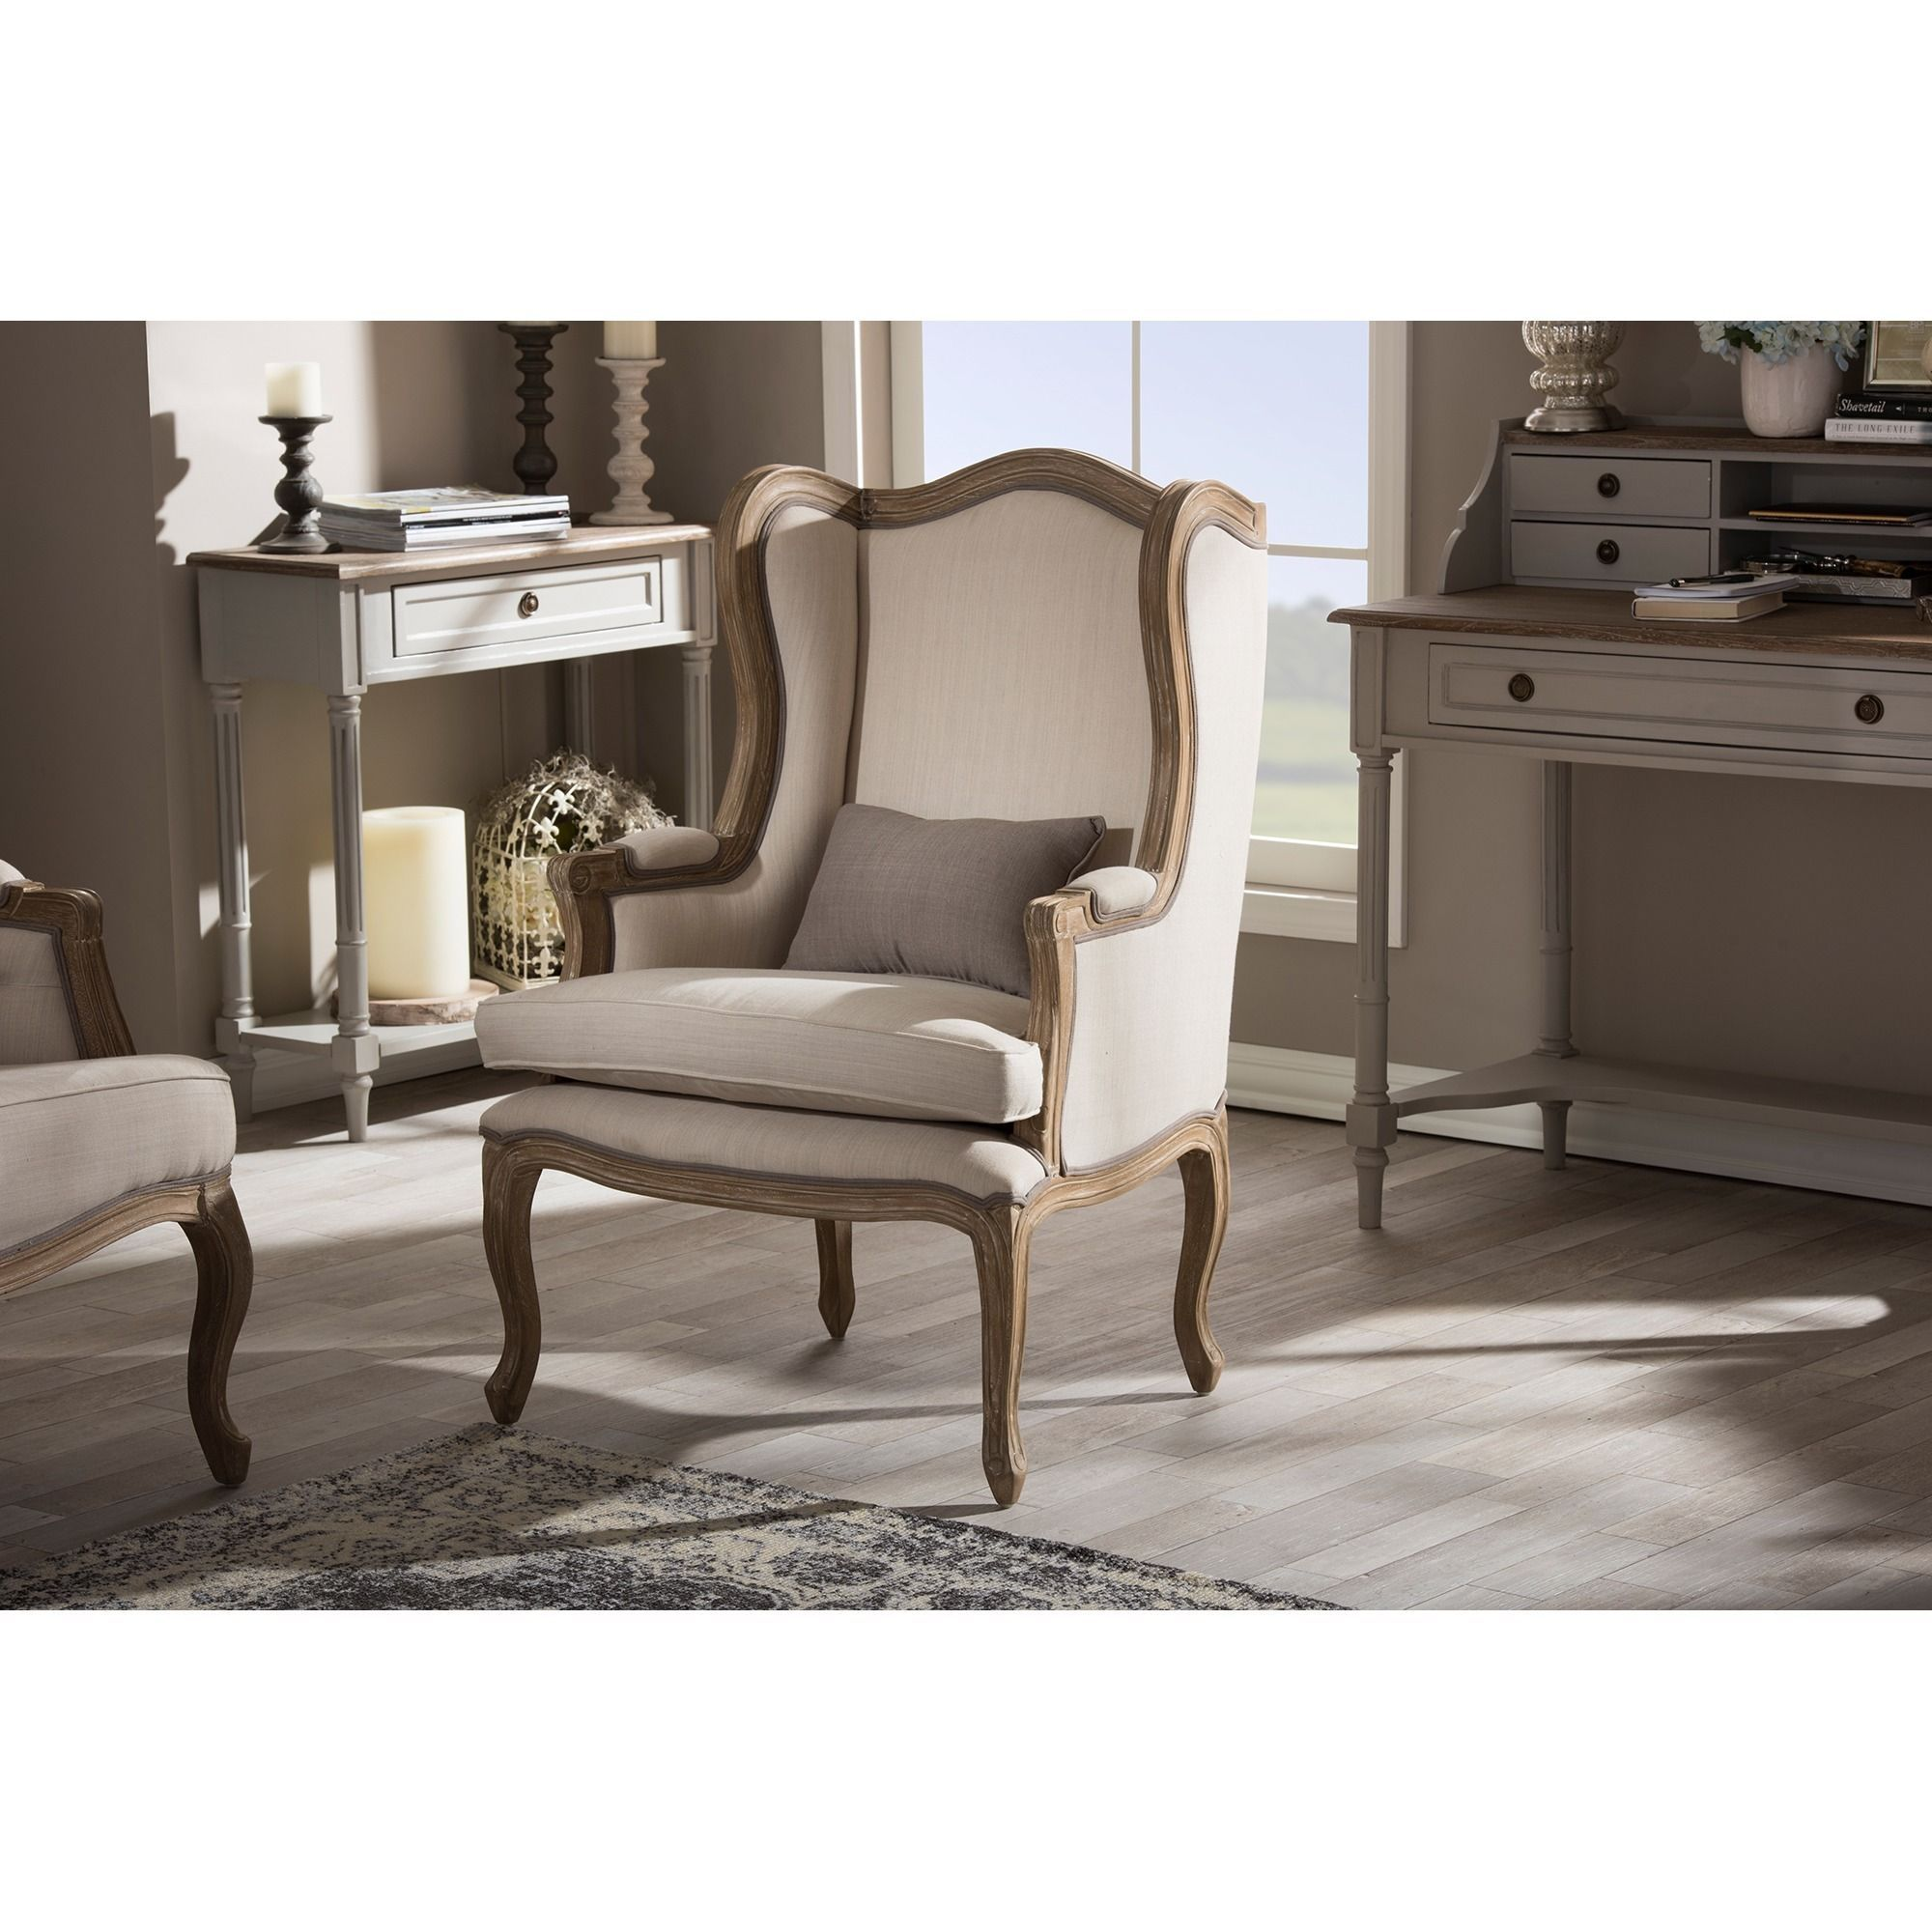 Baxton studio oreille french provincial style white wash distressed upholstered armchair